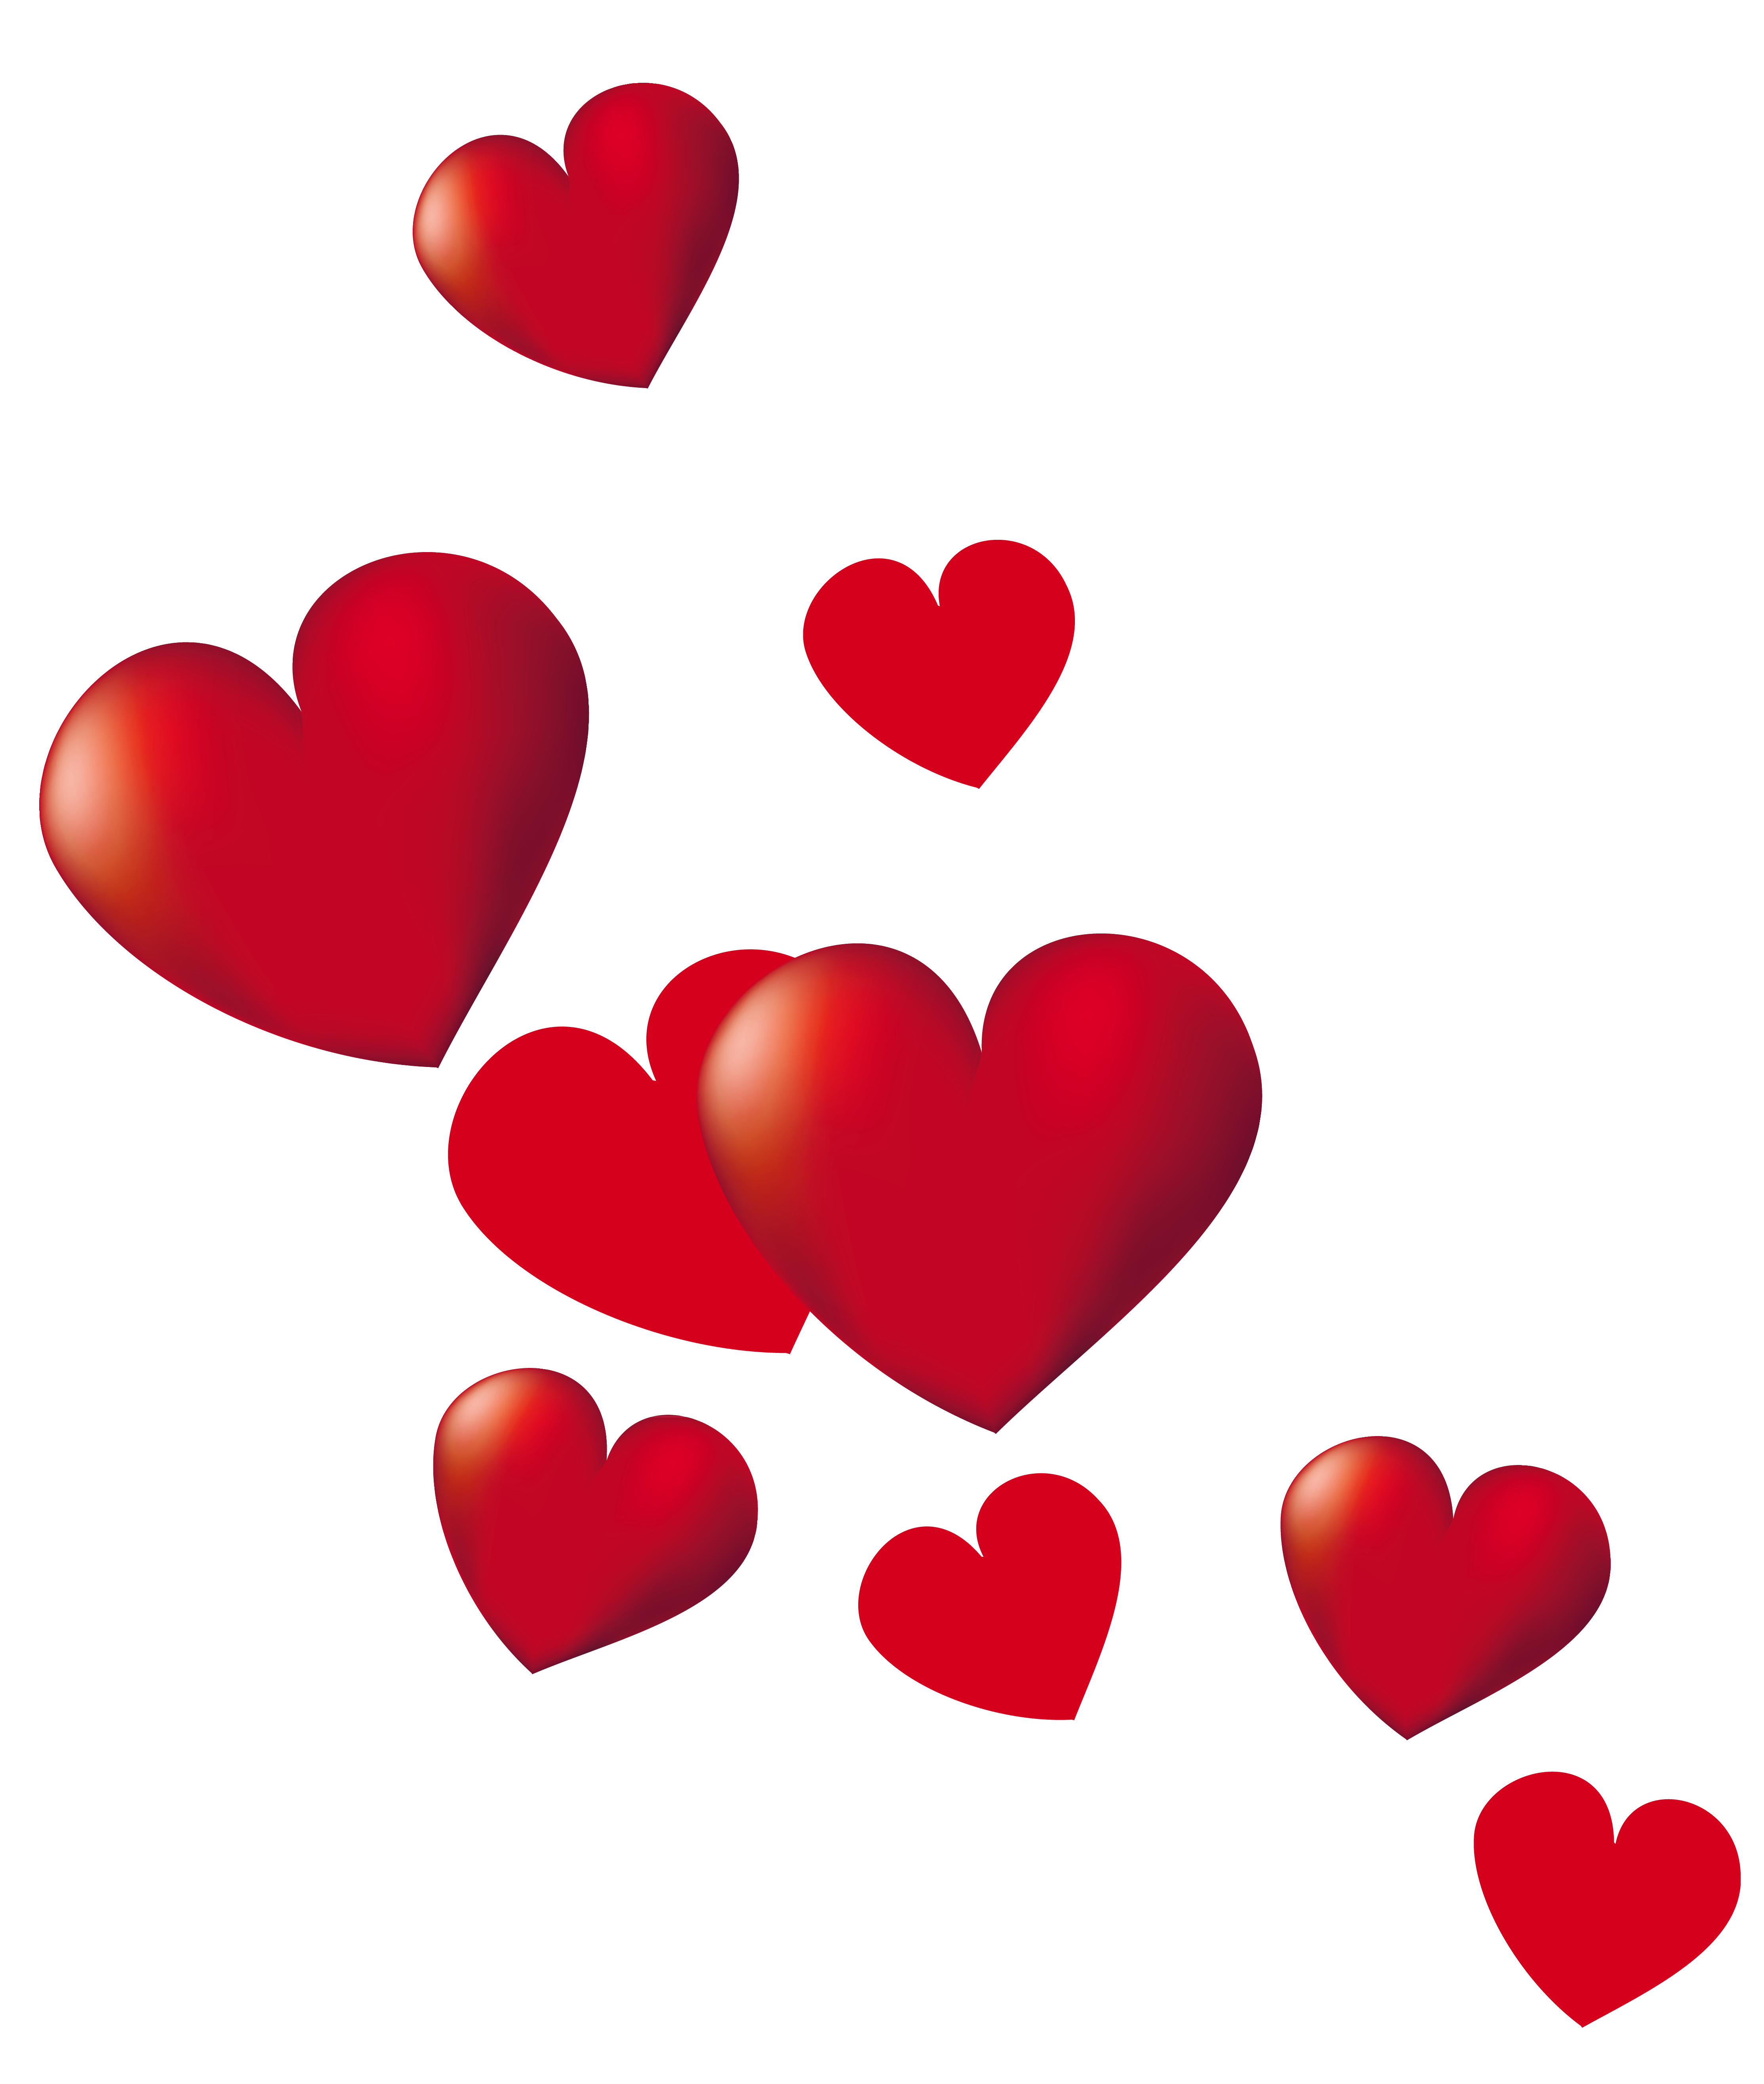 Hearts PNG Picture   Gallery Yopriceville - High-Quality Images and ...